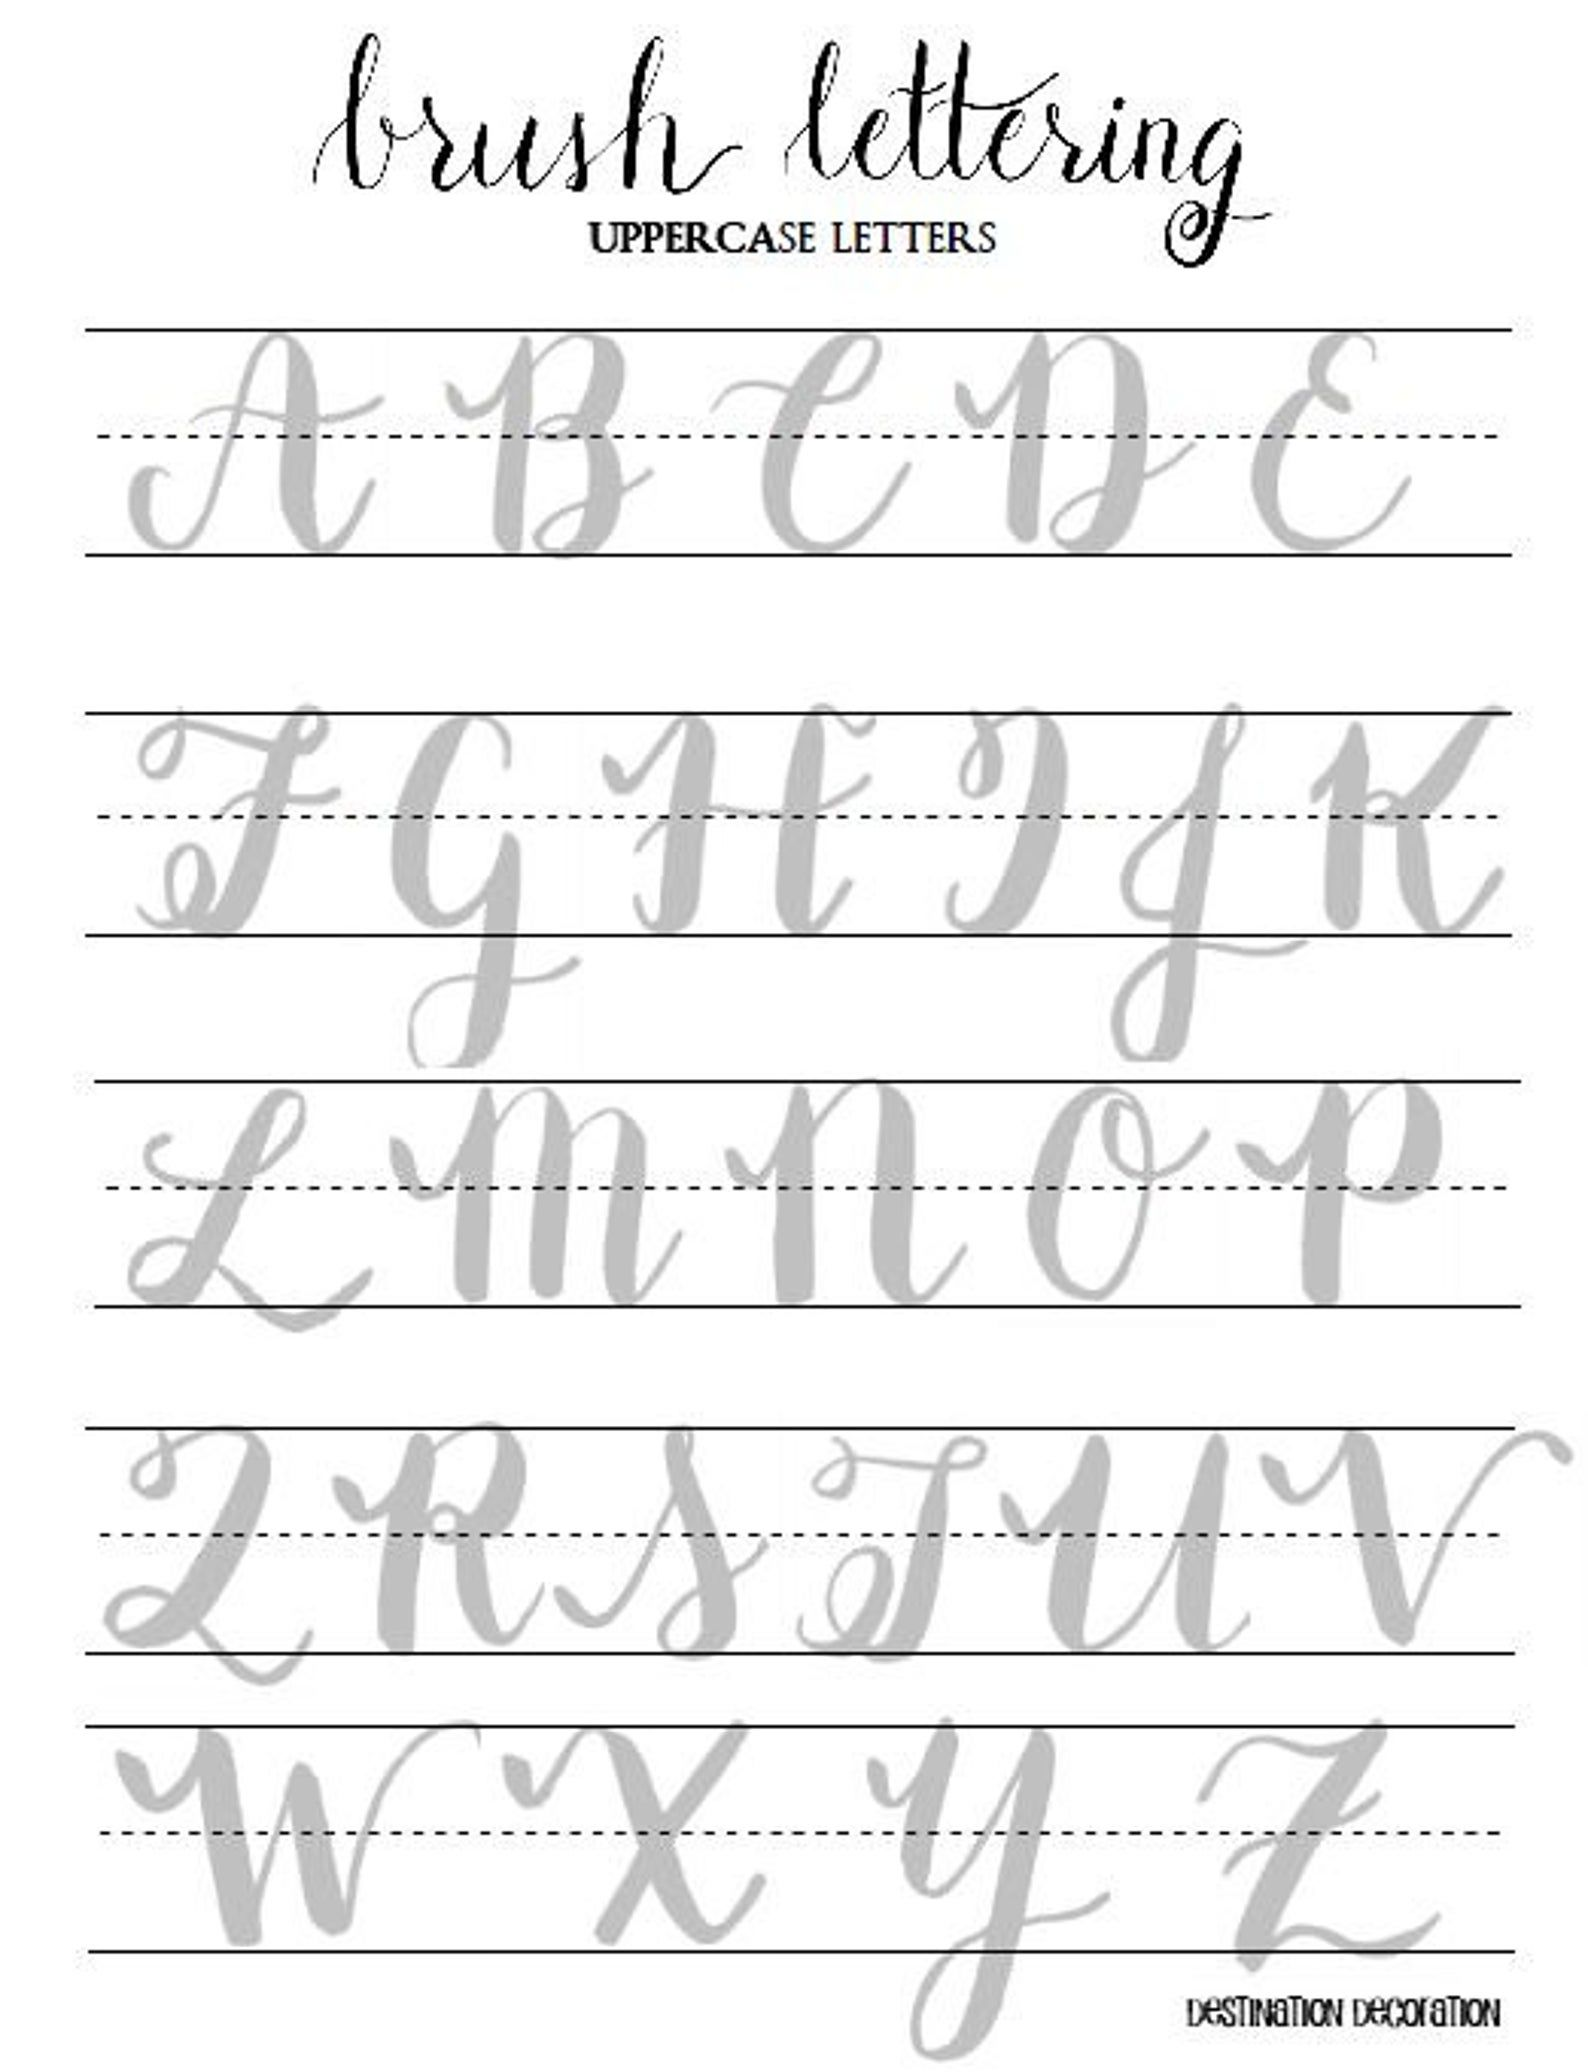 Brush Lettering Practice Worksheets Uppercase And Lowercase Letters Brush Lettering Practice With Sample Letters A Through Z In 2020 Brush Lettering Practice Lettering Guide Brush Lettering Worksheet [ 2072 x 1588 Pixel ]